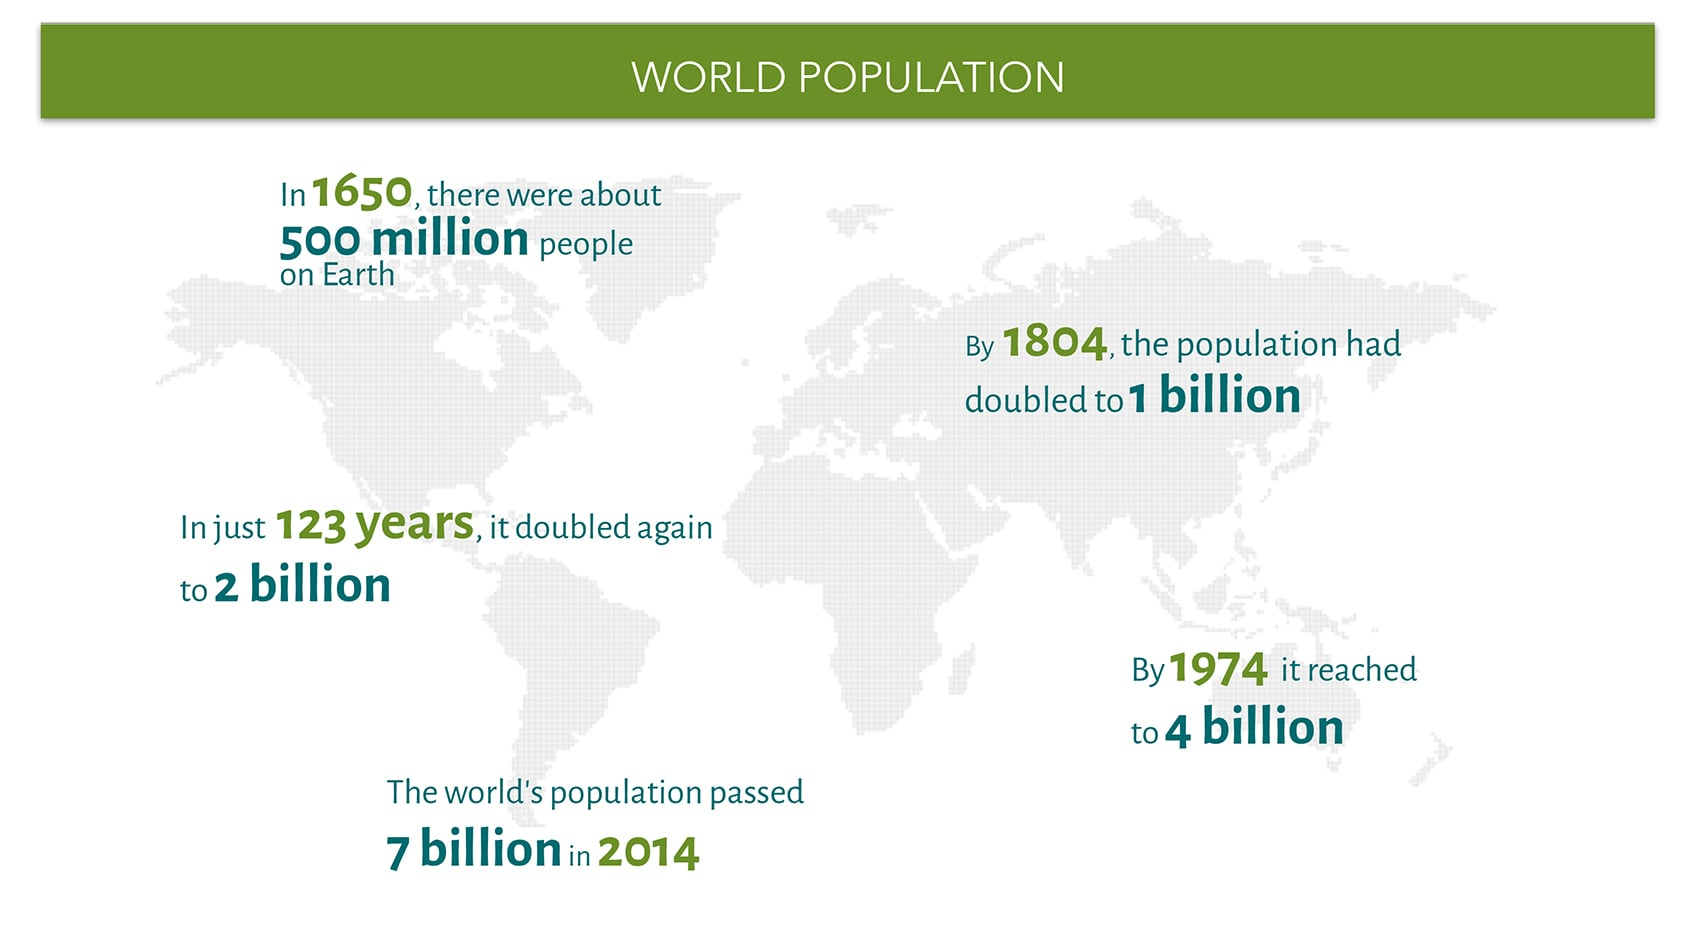 world population problems essay Global population aging trends and issues  aimed at raising public awareness about global aging problems,  as other parts of the world, population aging.